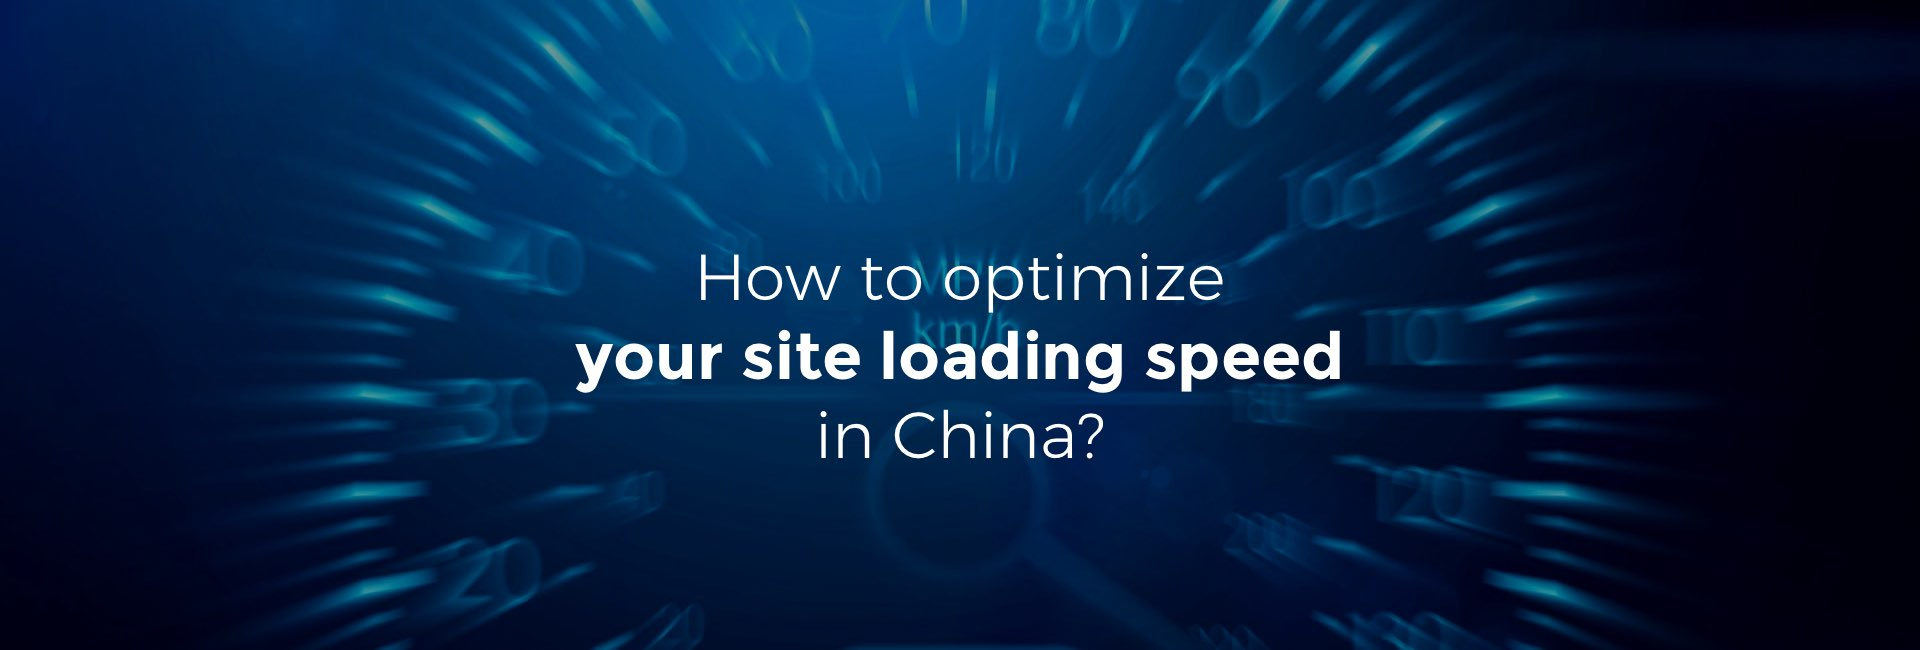 How to optimize your site loading speed in China